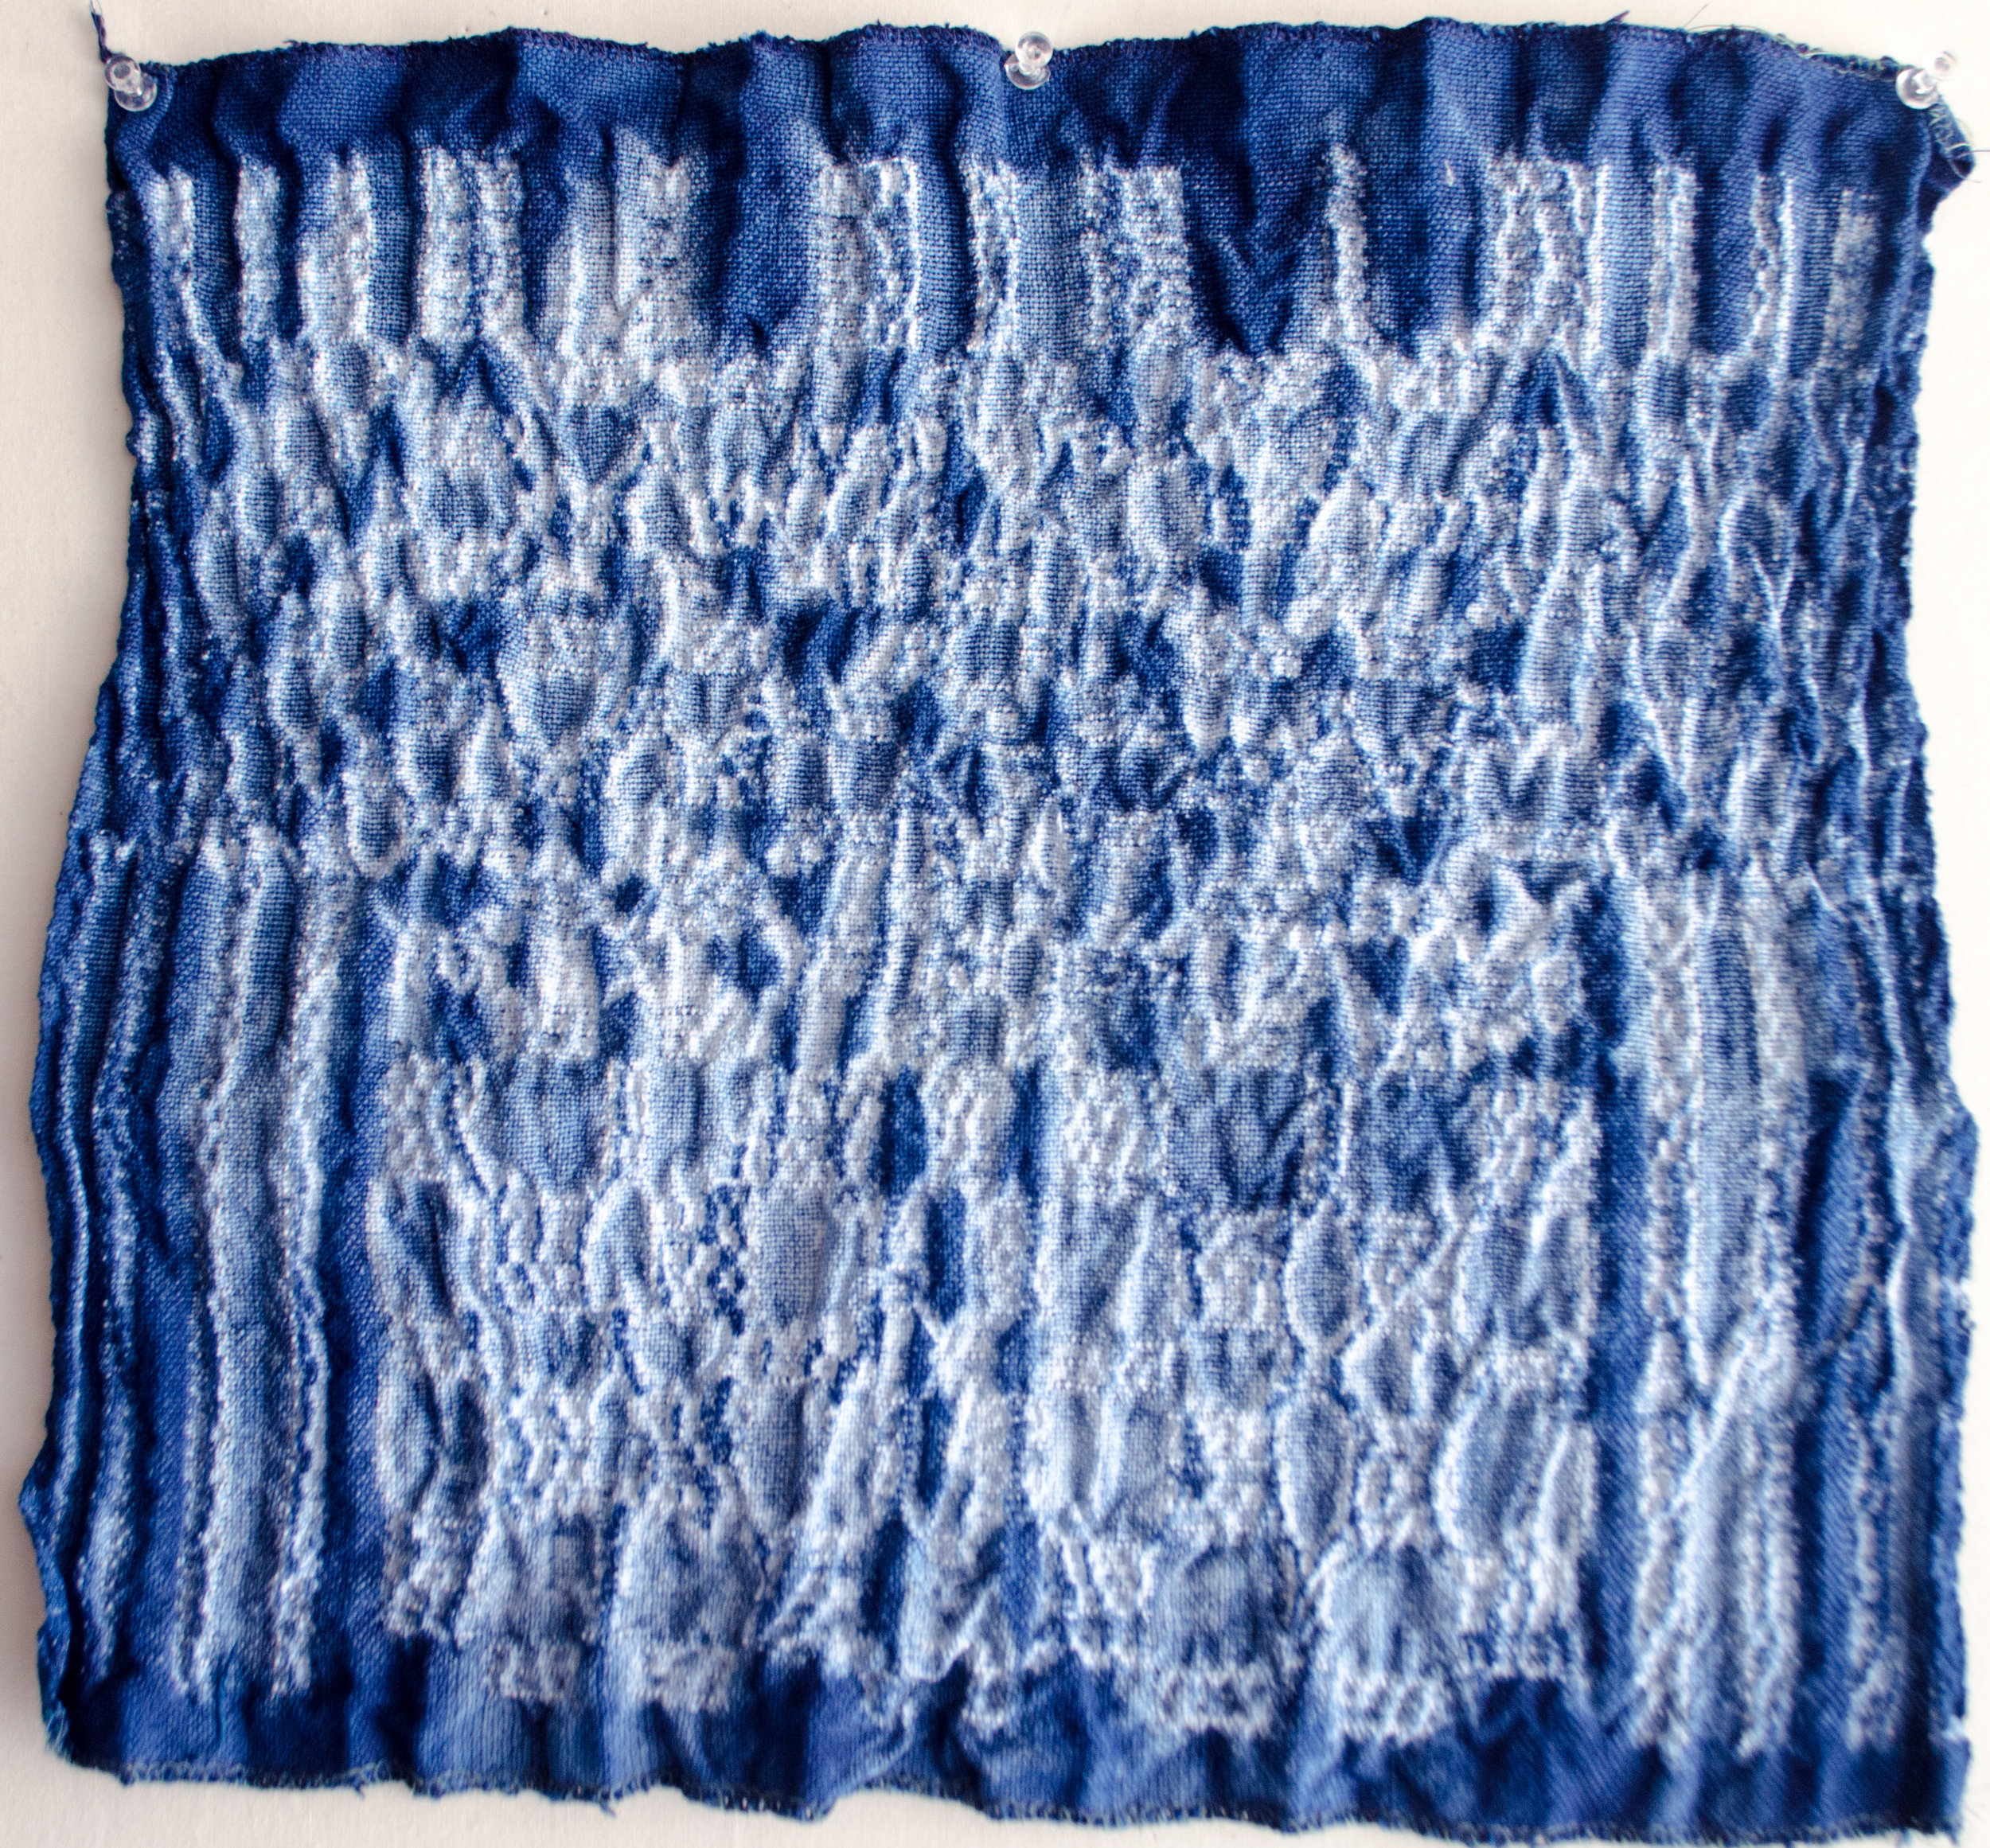 Carlyn Clark dipped this woven shibori perle cotton by Ginny Mateen